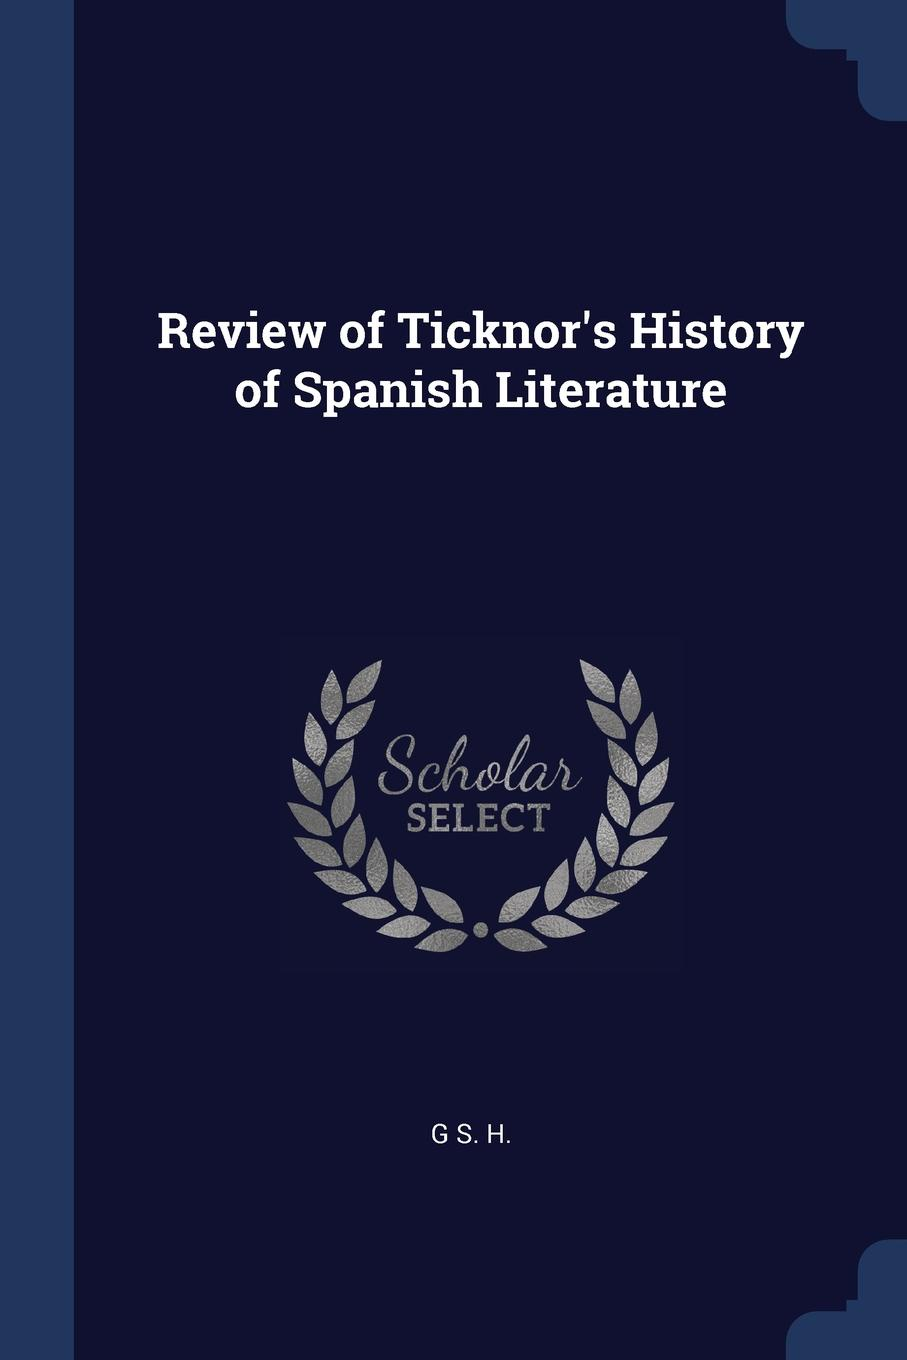 Review of Ticknor.s History of Spanish Literature. G S. H.